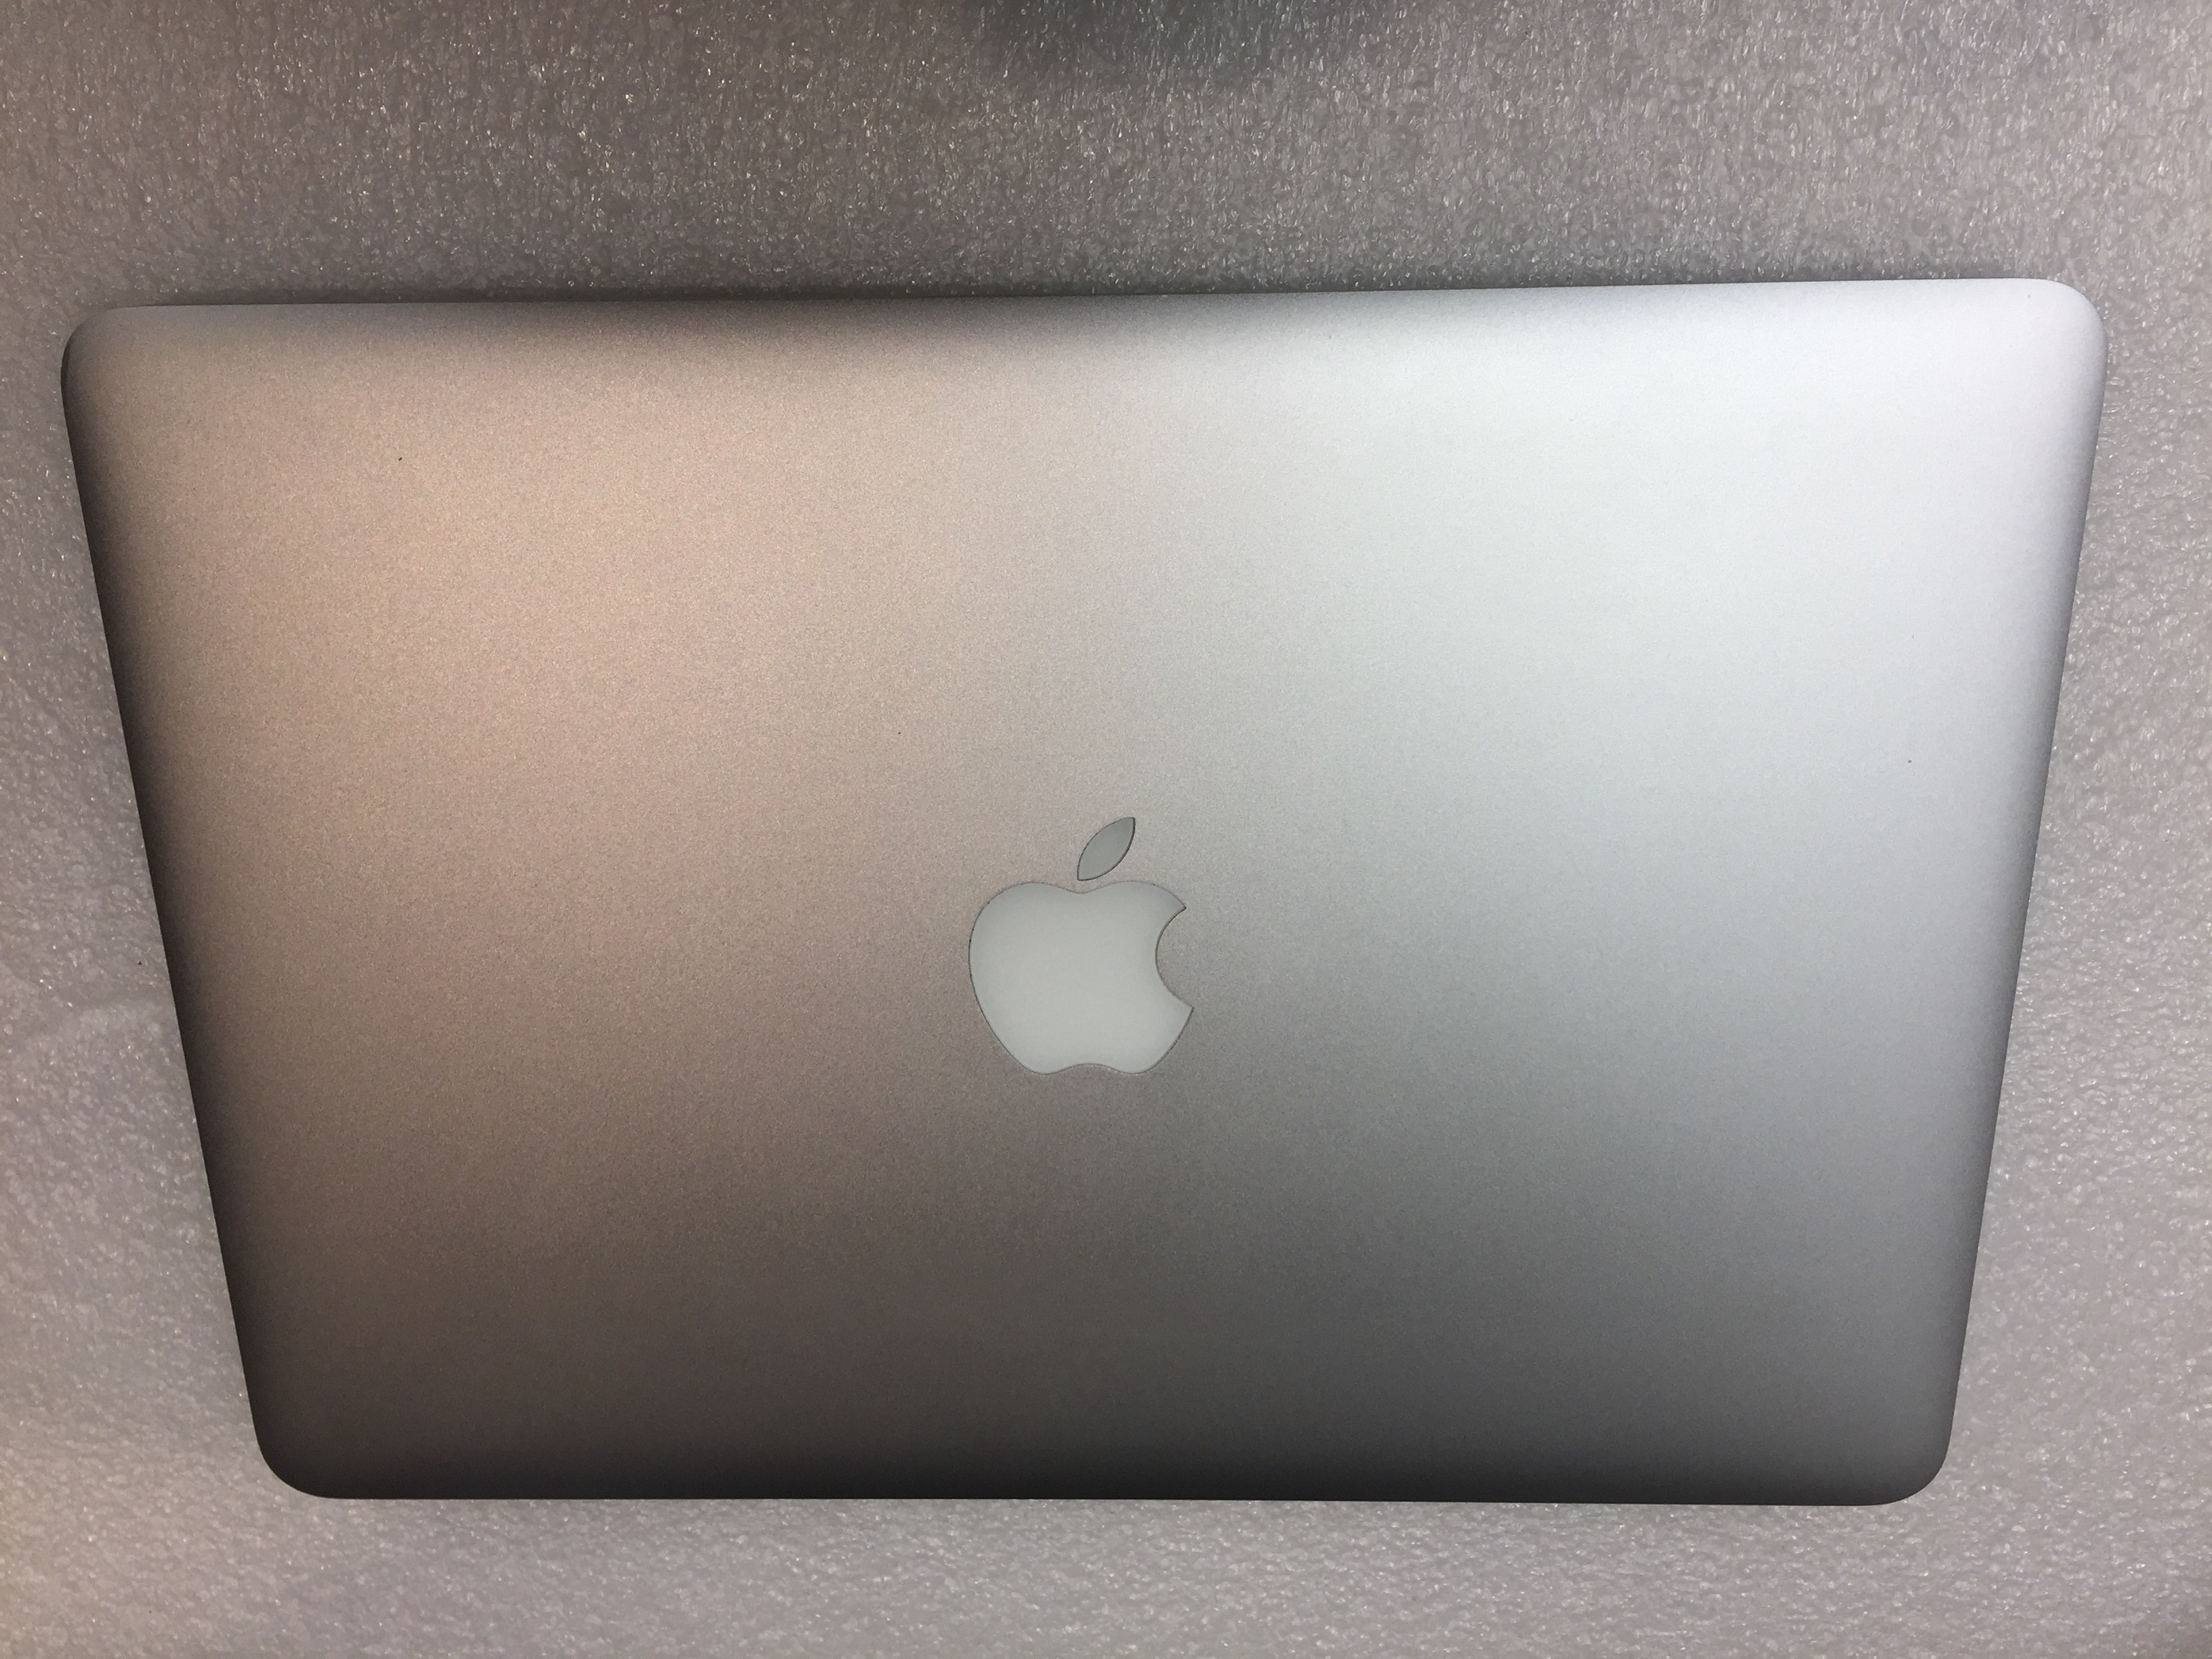 MacBook Pro 13-inch Retina, Intel Core i5 2,7 GHZ, 8 GB, 128 GB SSD, imagen 1